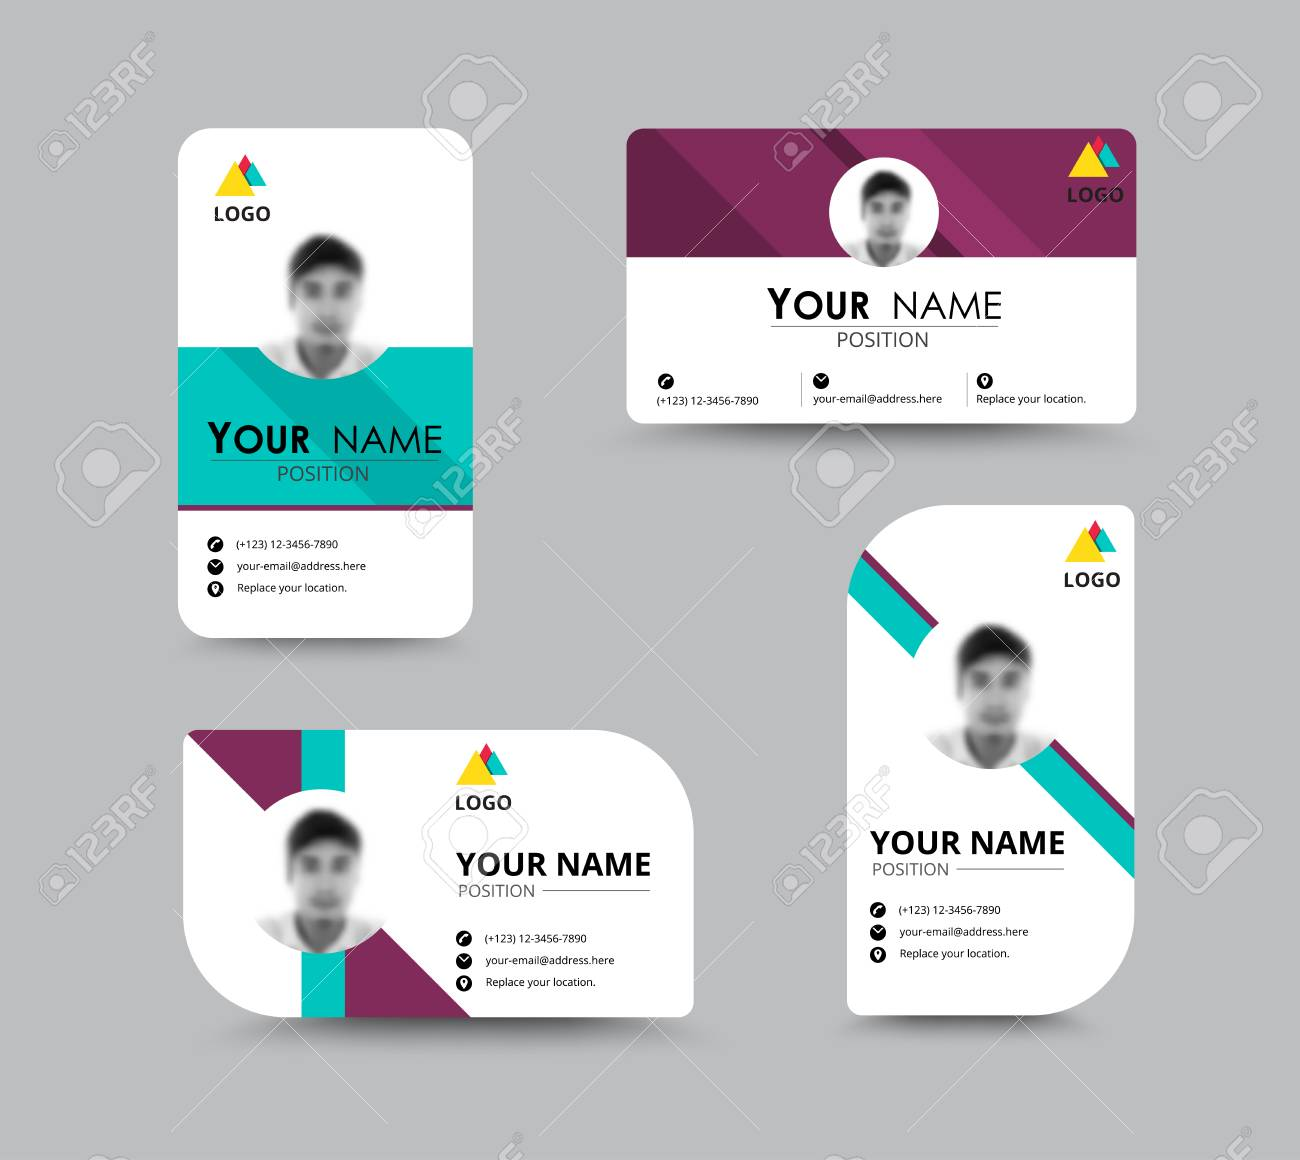 Great Business Card Sample Design Gallery - Business Card Ideas ...